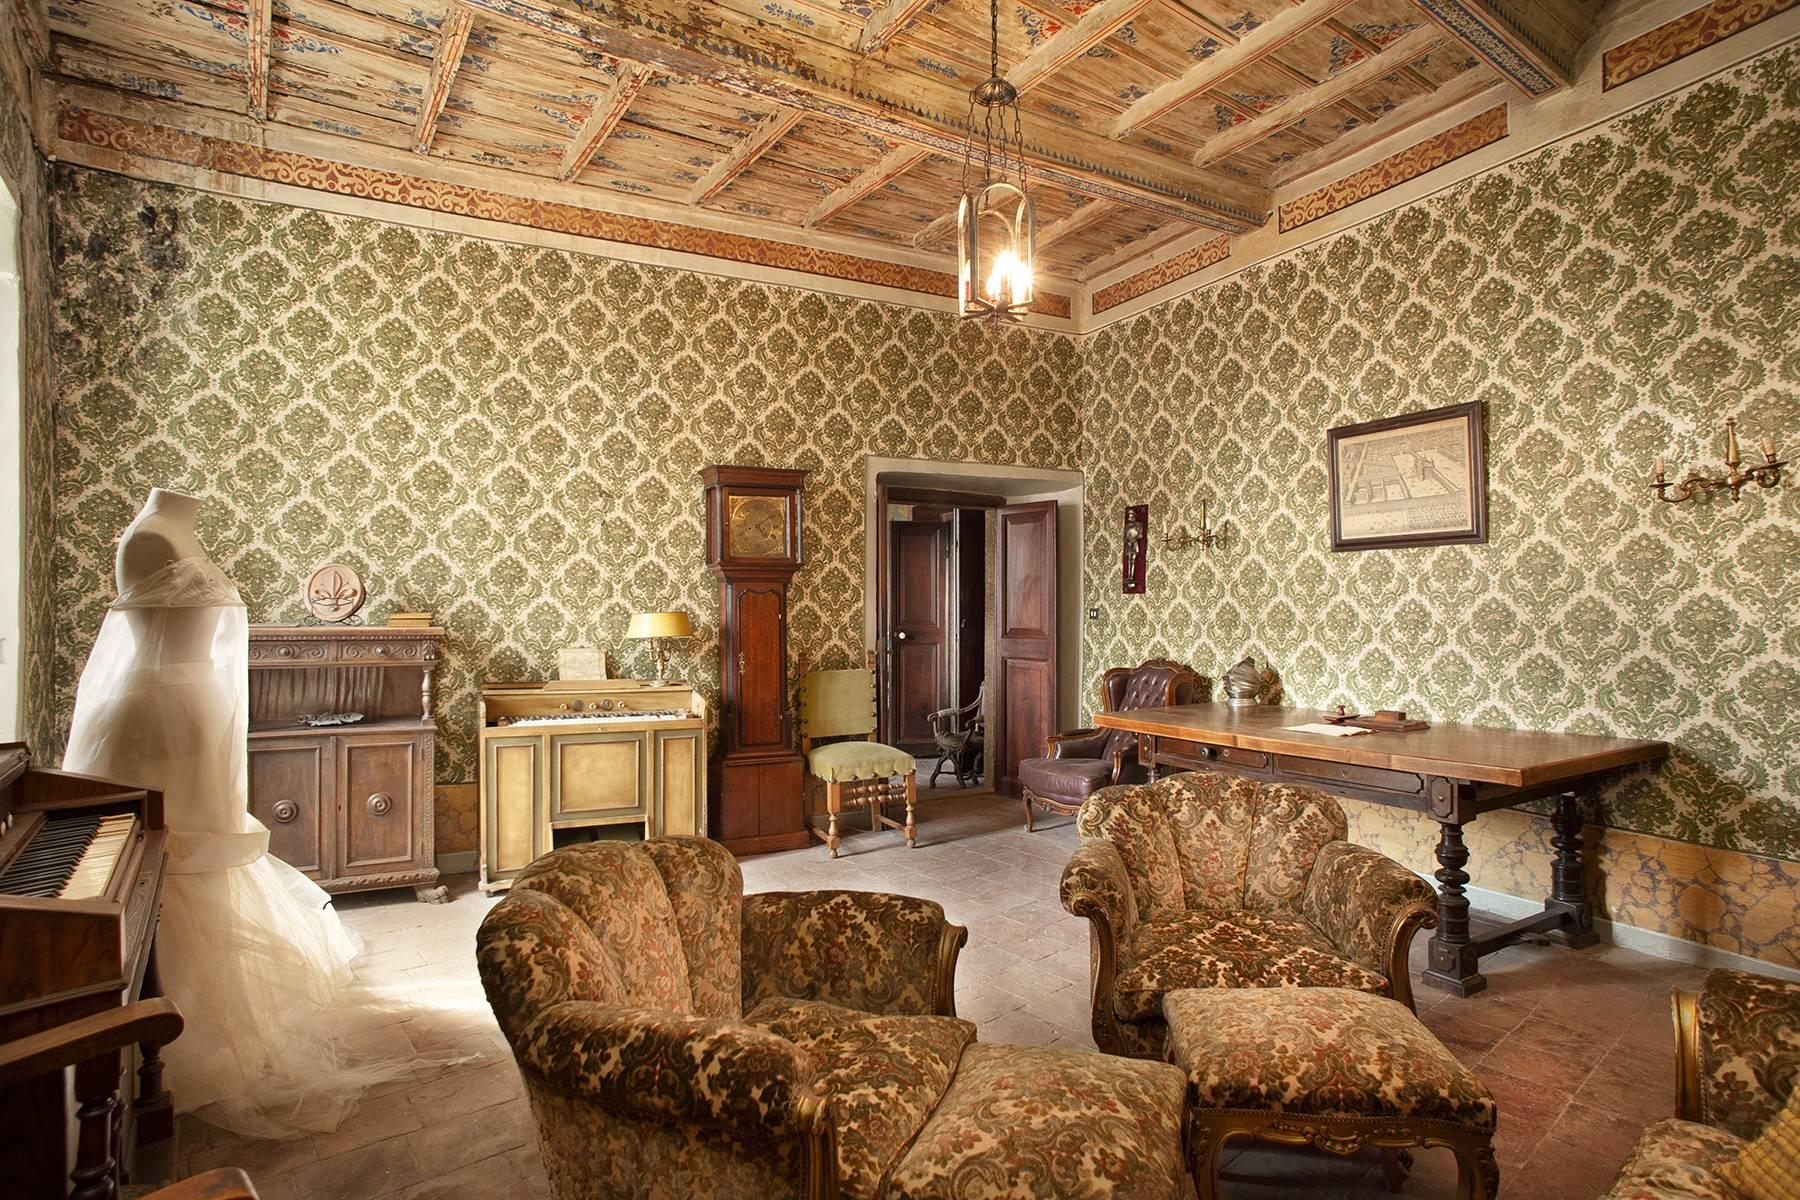 Historic Mansion in the countryside near Rome - 10